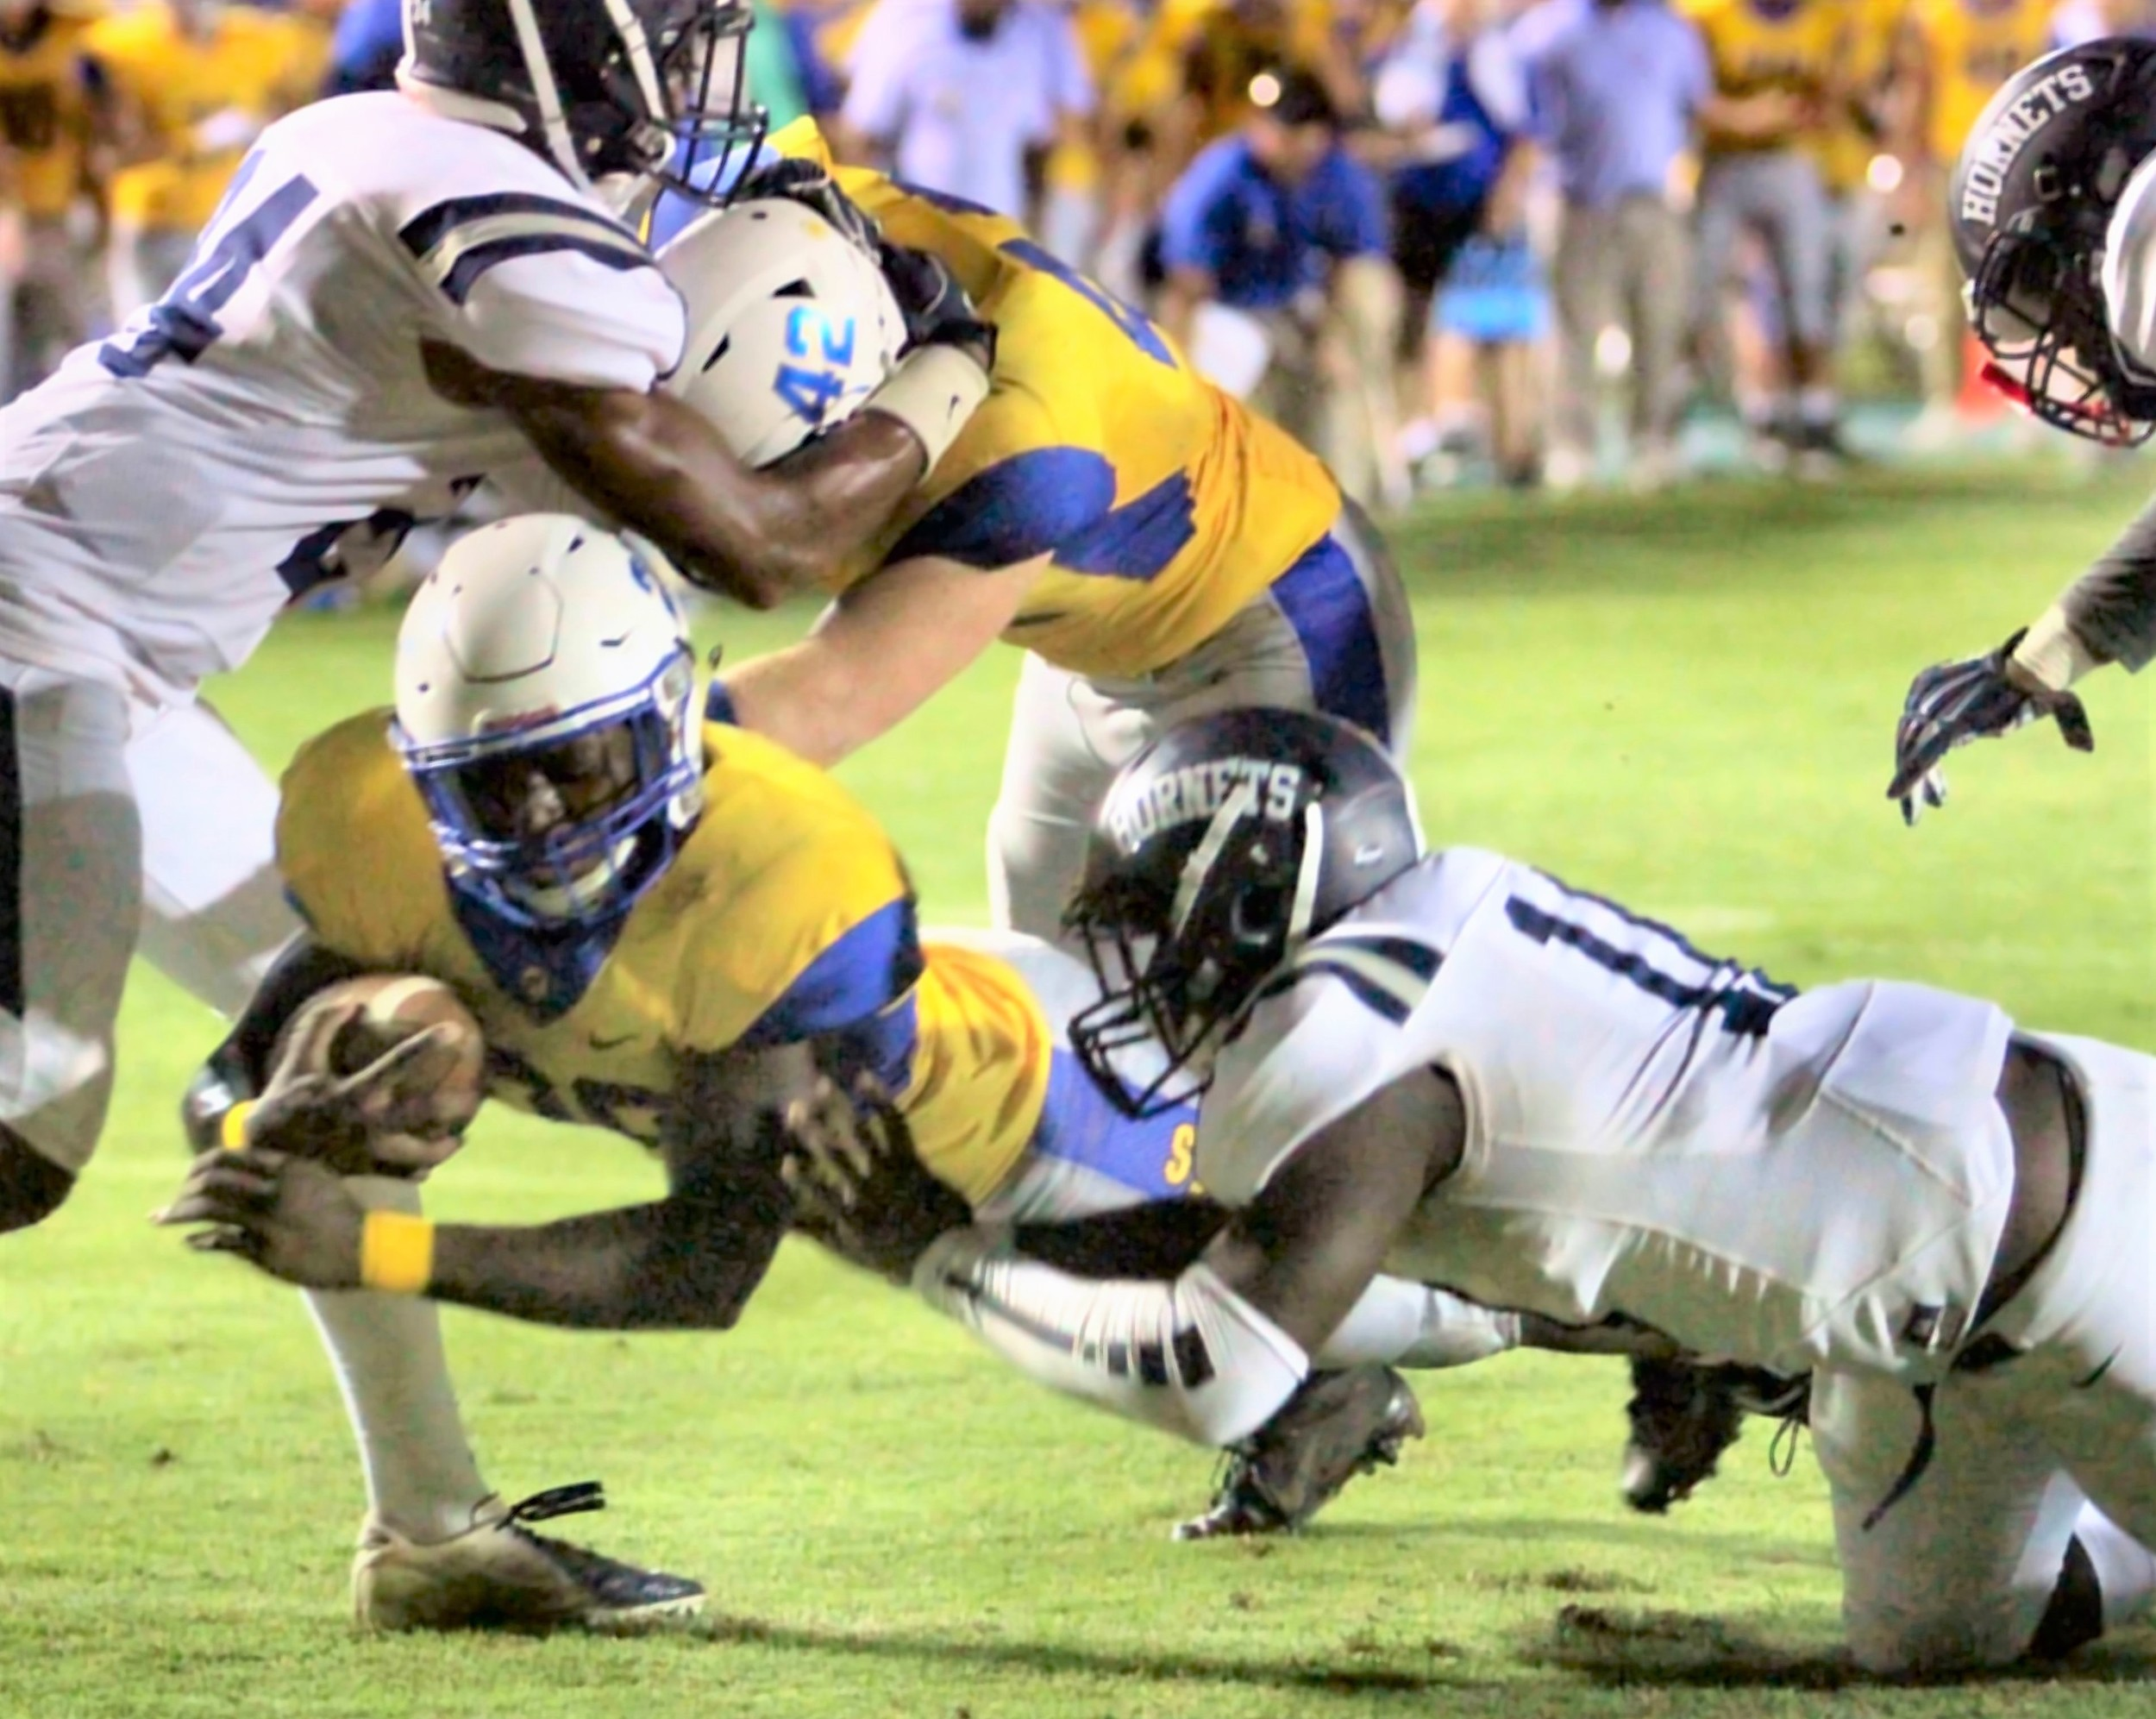 Damell Bell dives forward for Fairhope yardage.